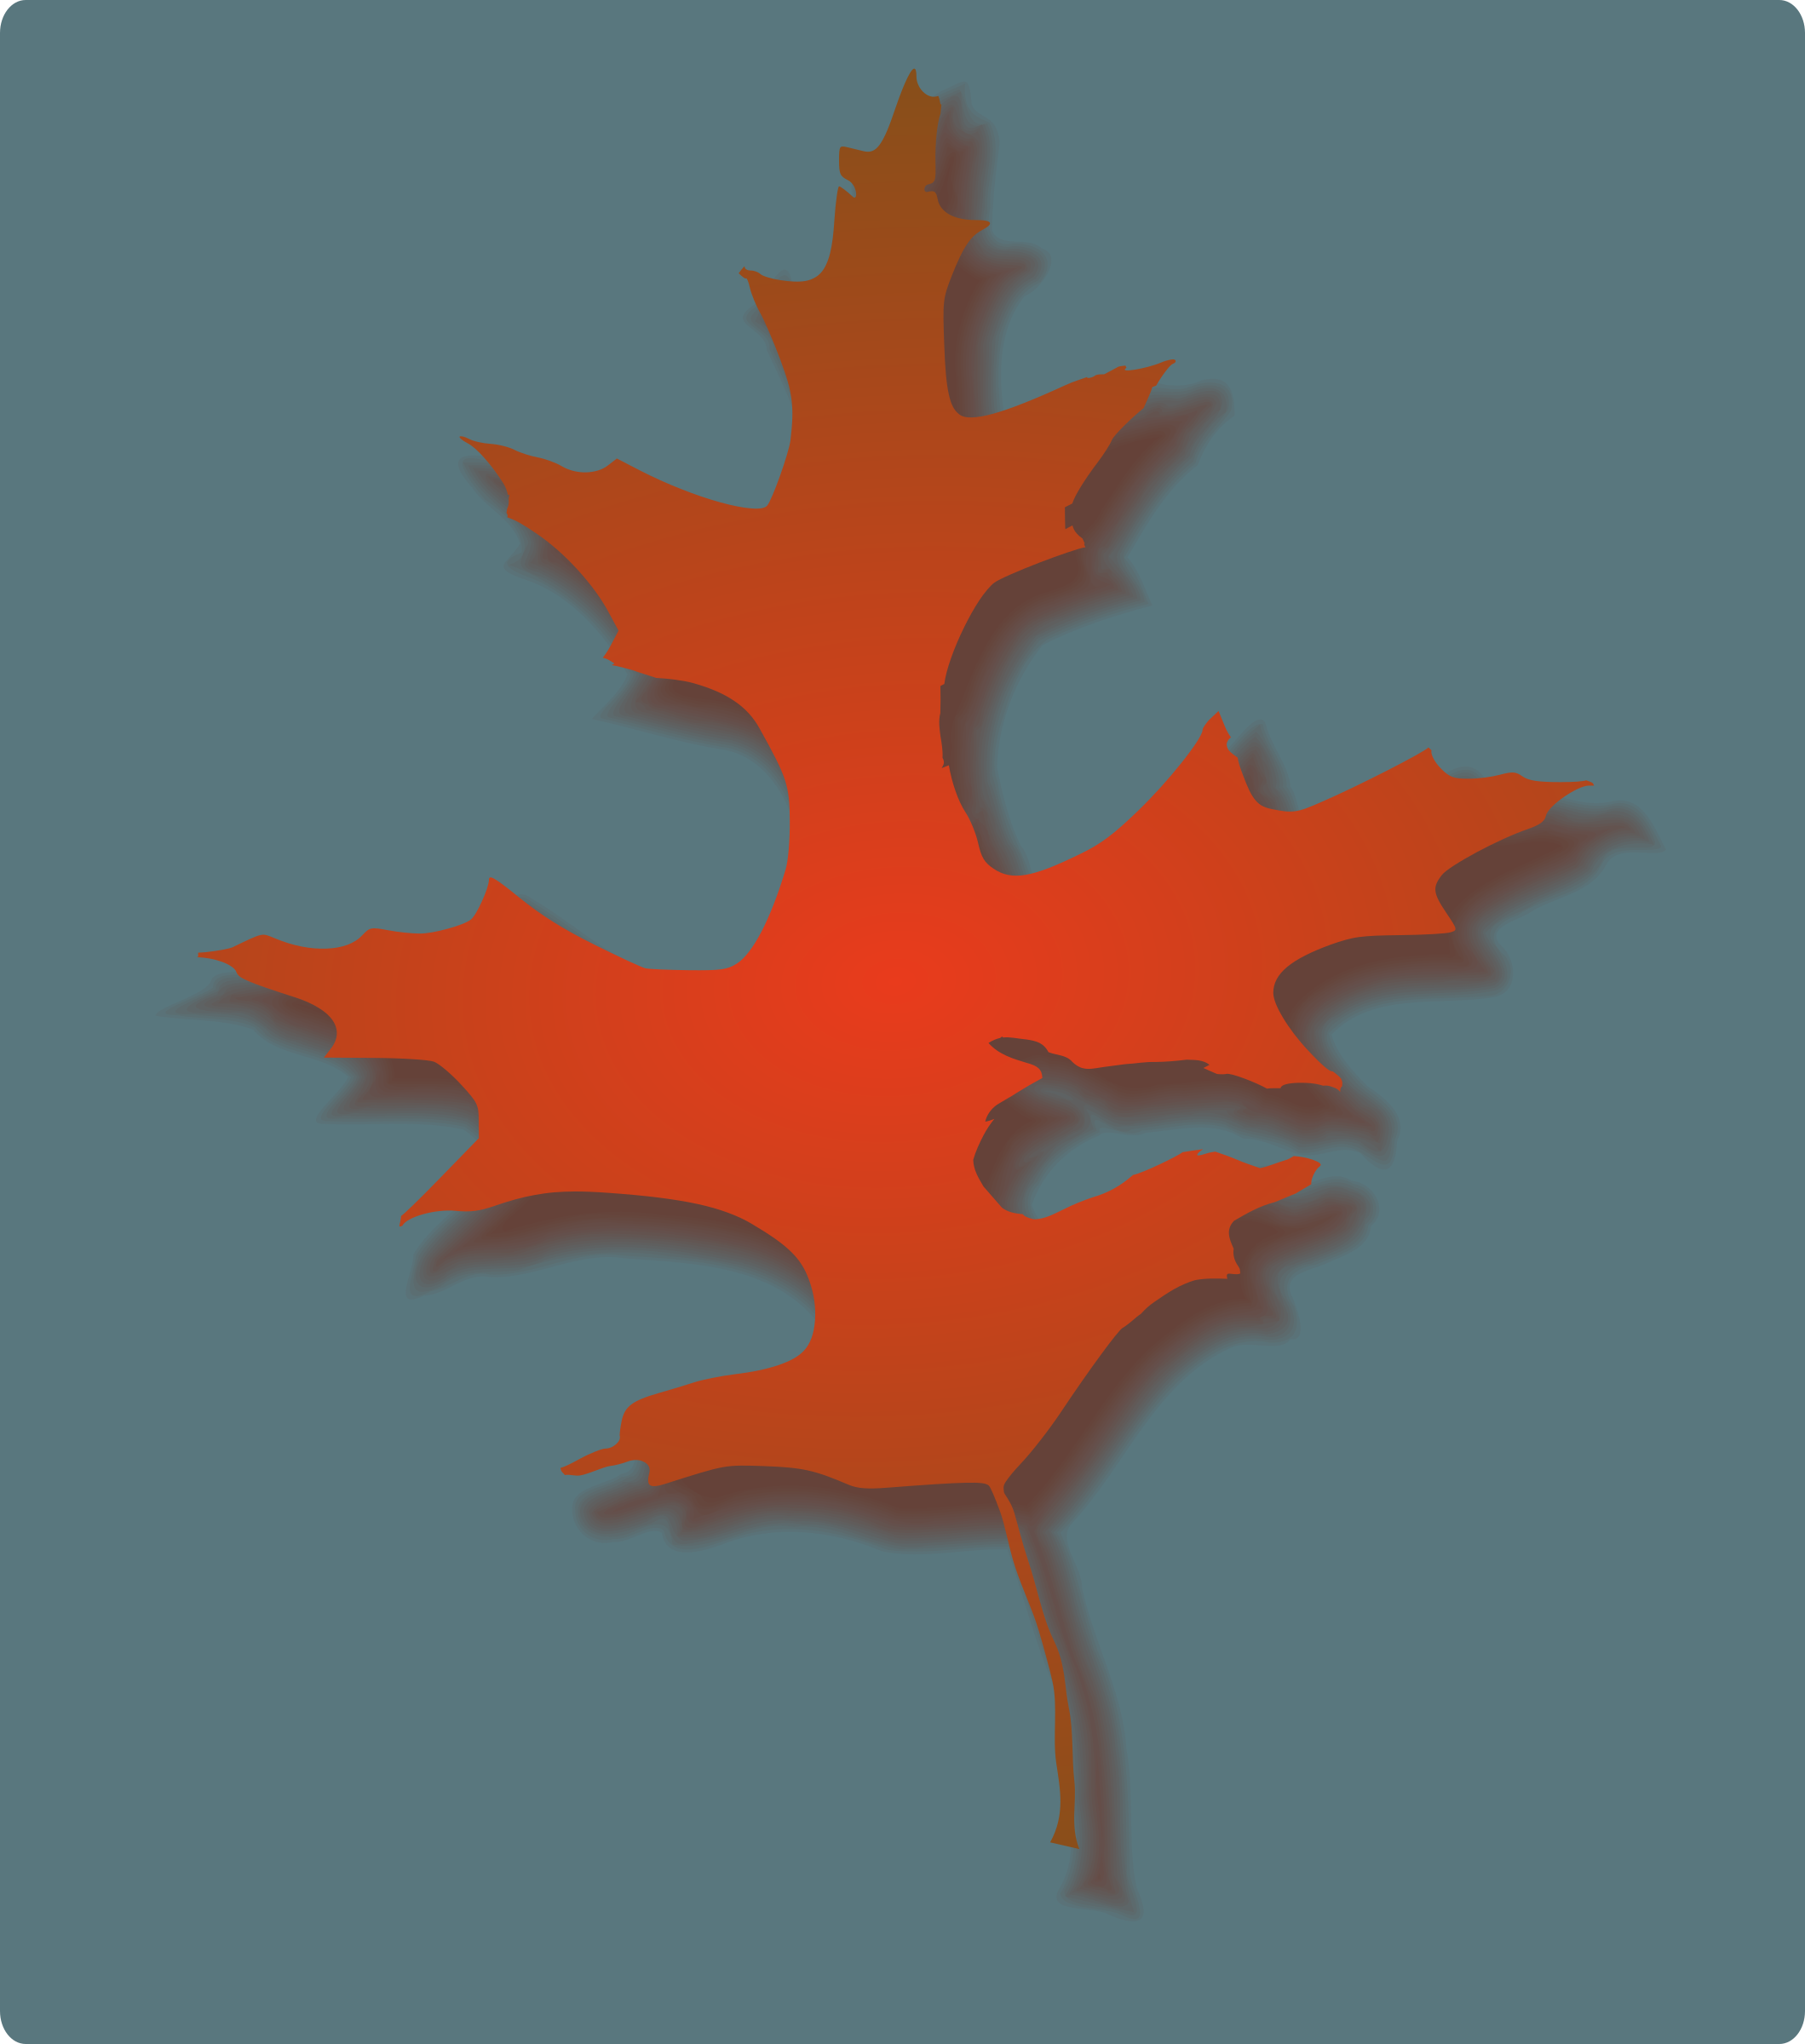 Oak Leaf - Autumn by rwwgub